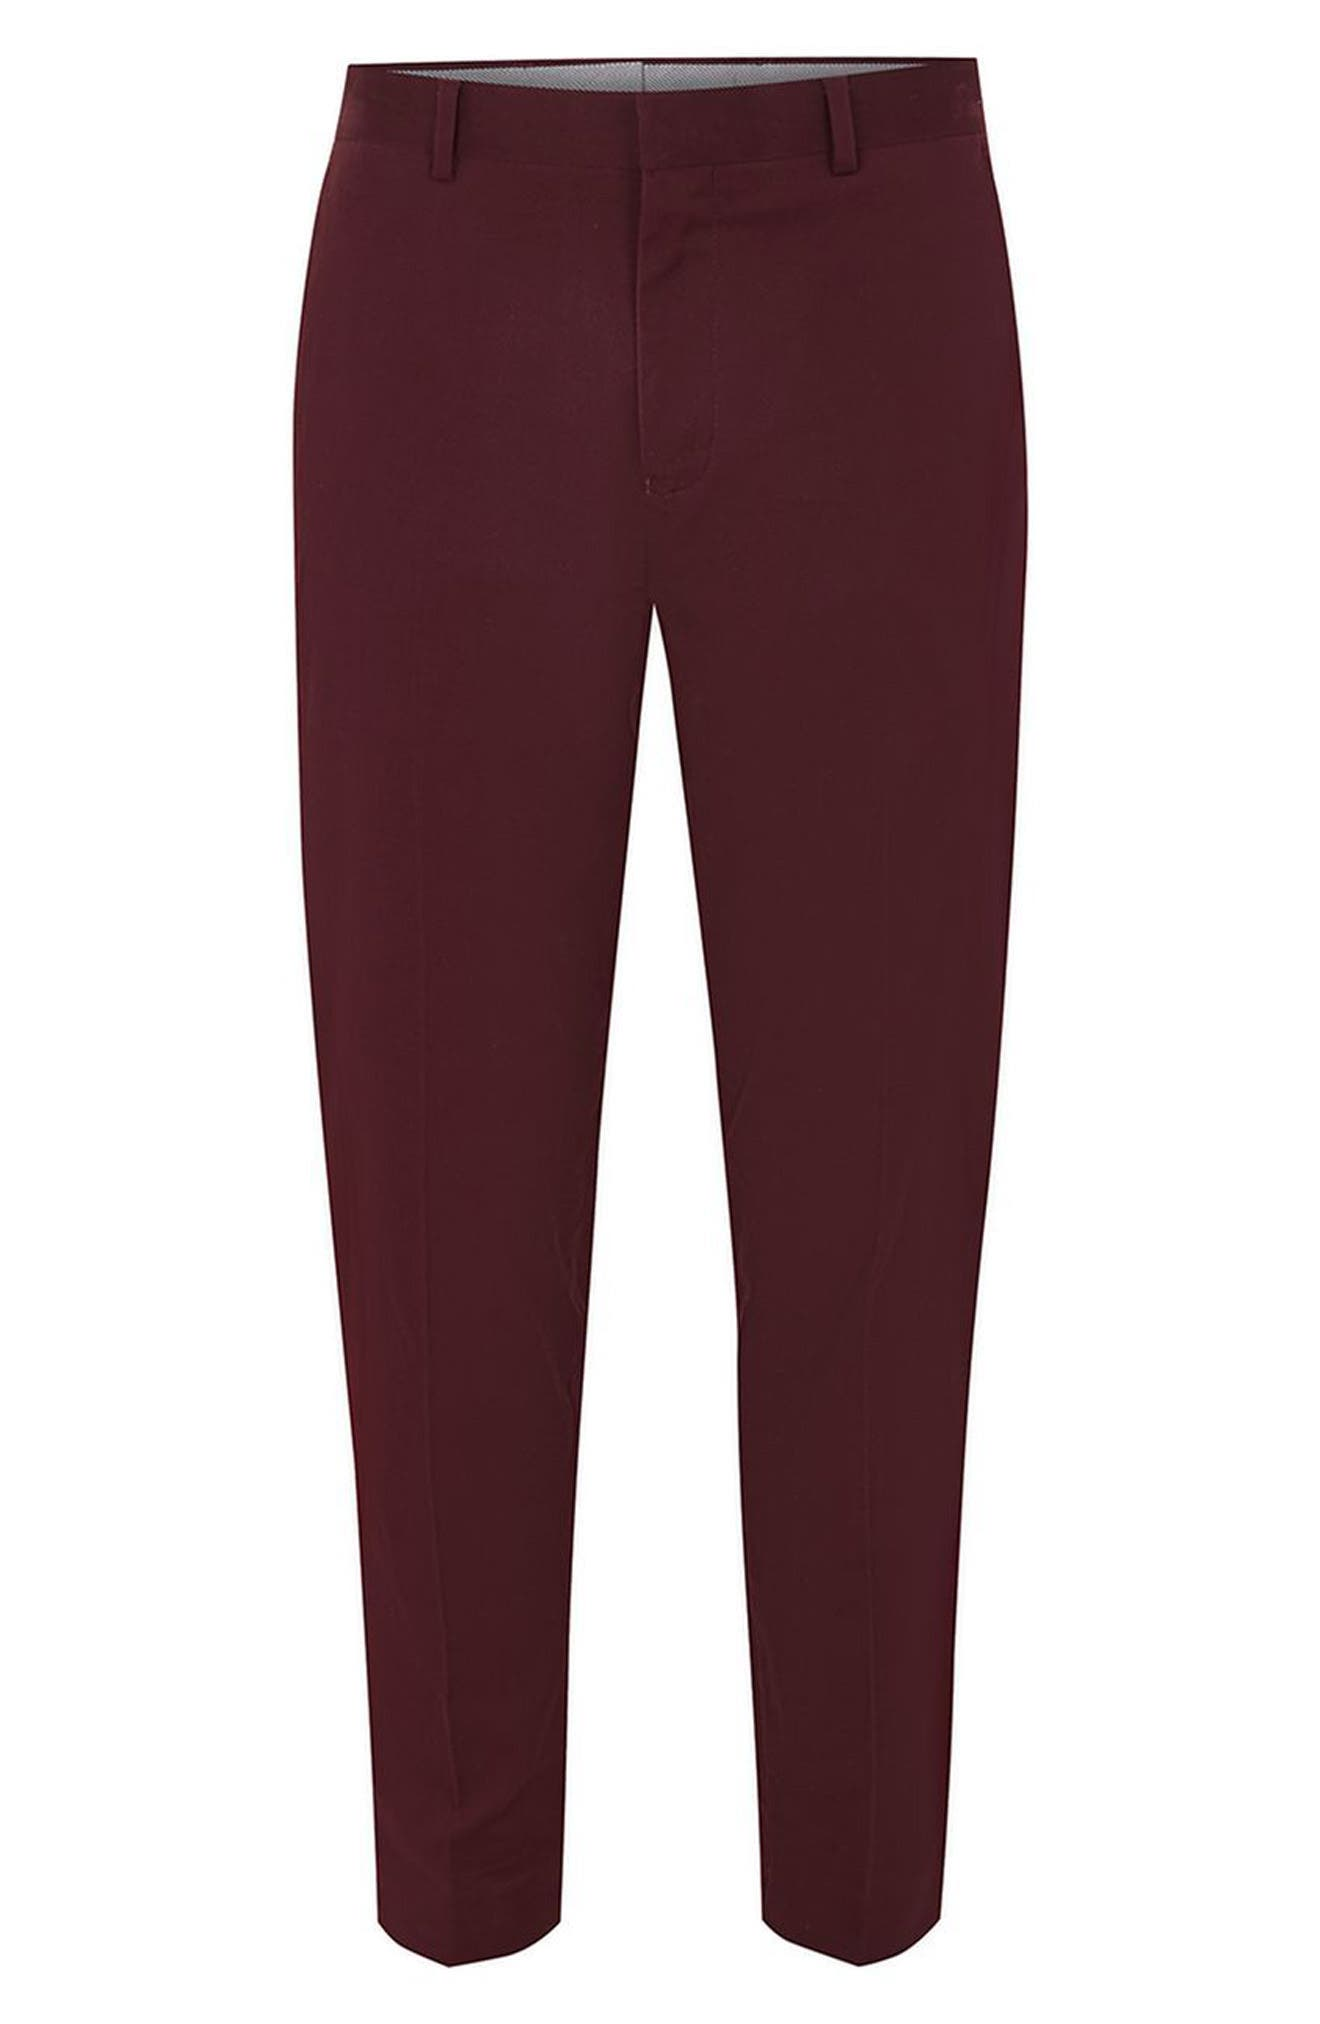 Twill Tapered Trousers,                             Alternate thumbnail 4, color,                             Burgundy